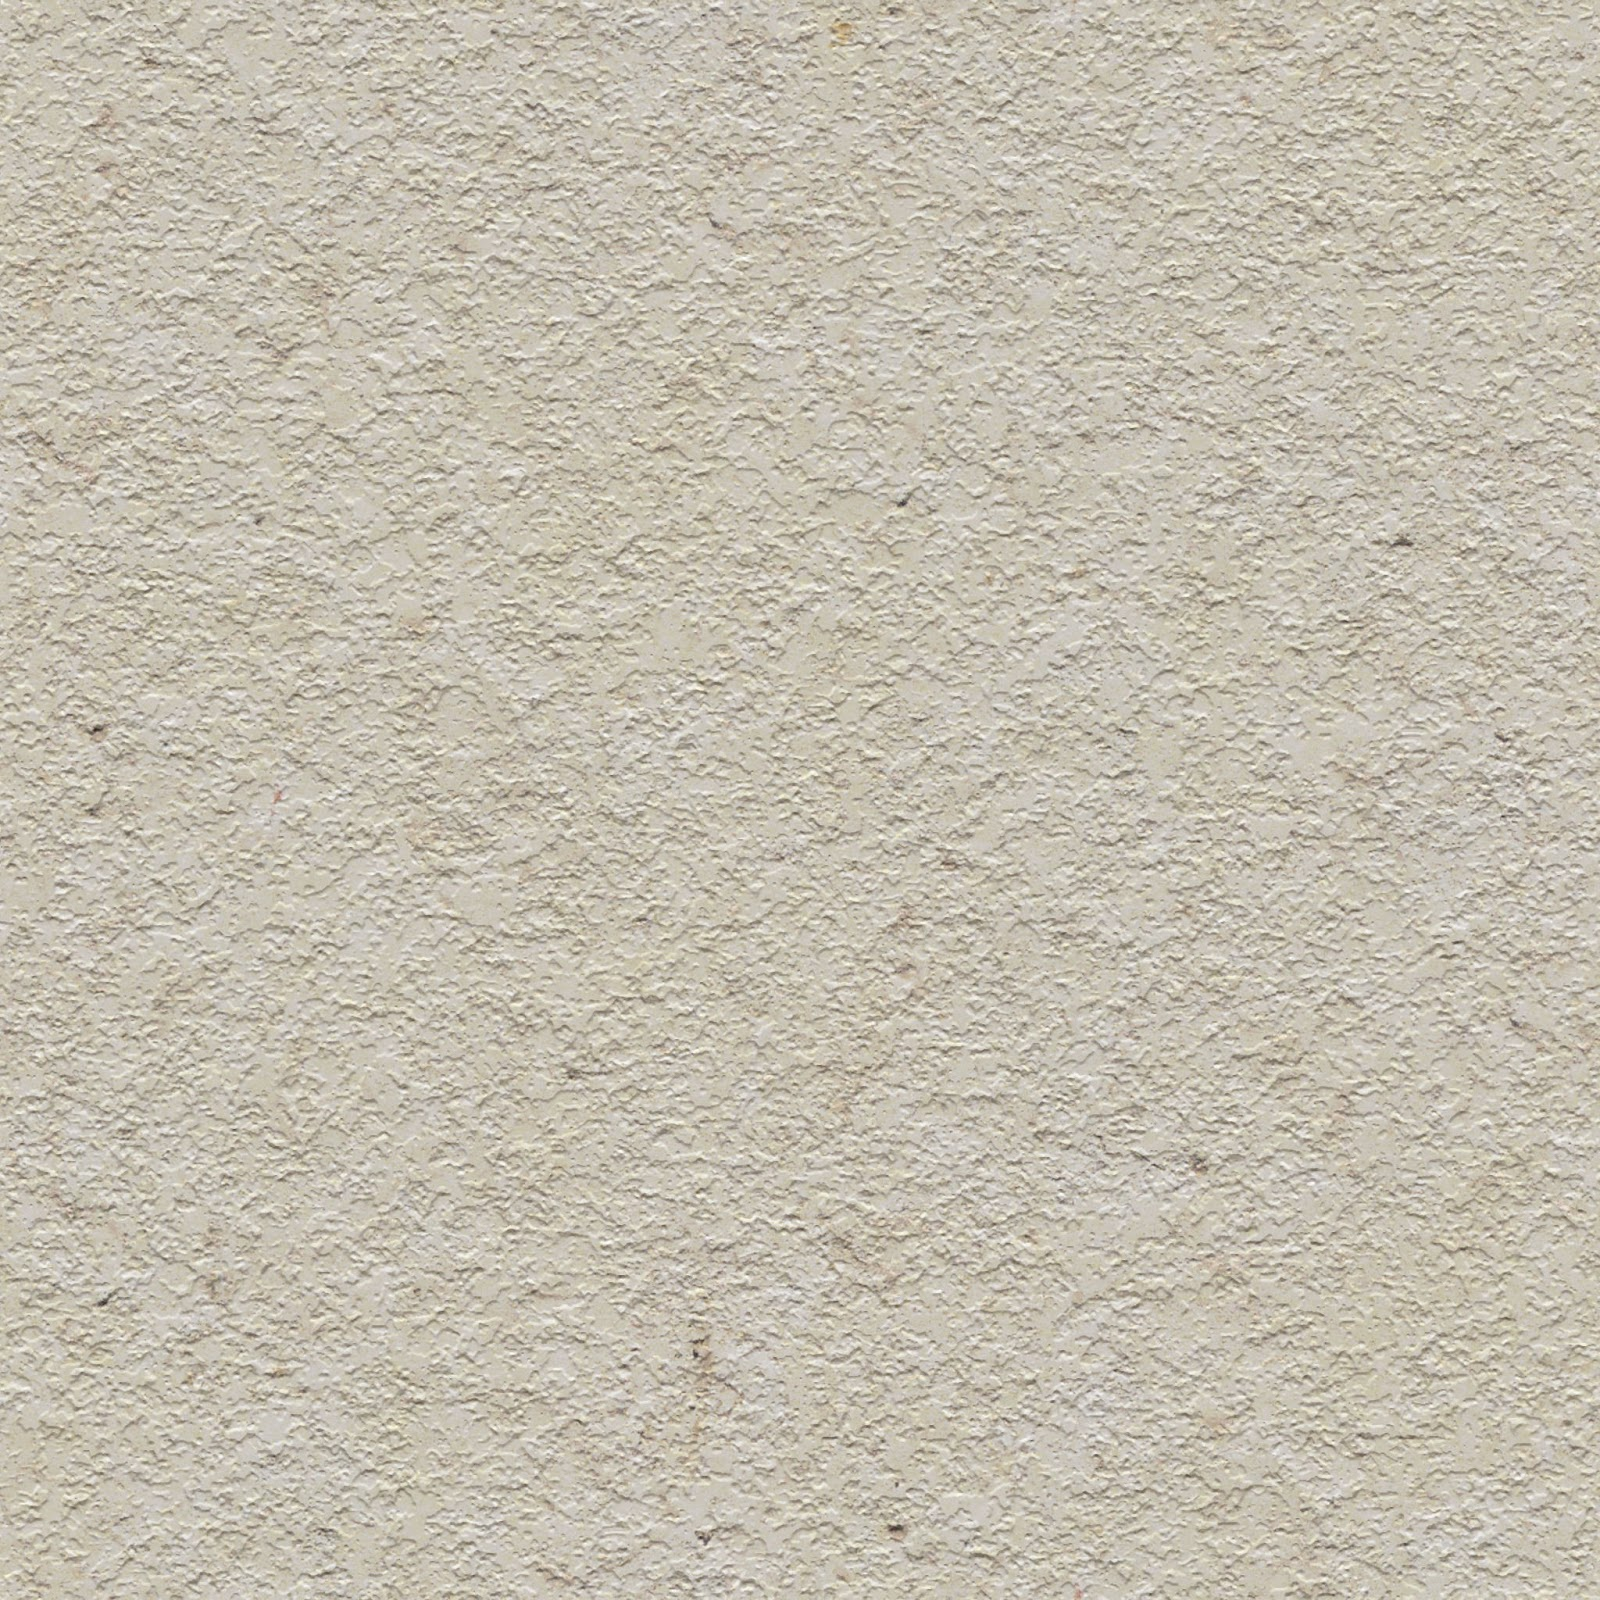 Smooth_stucco_white_paint_dirty_plaster_wall_texture_seamless_tileable